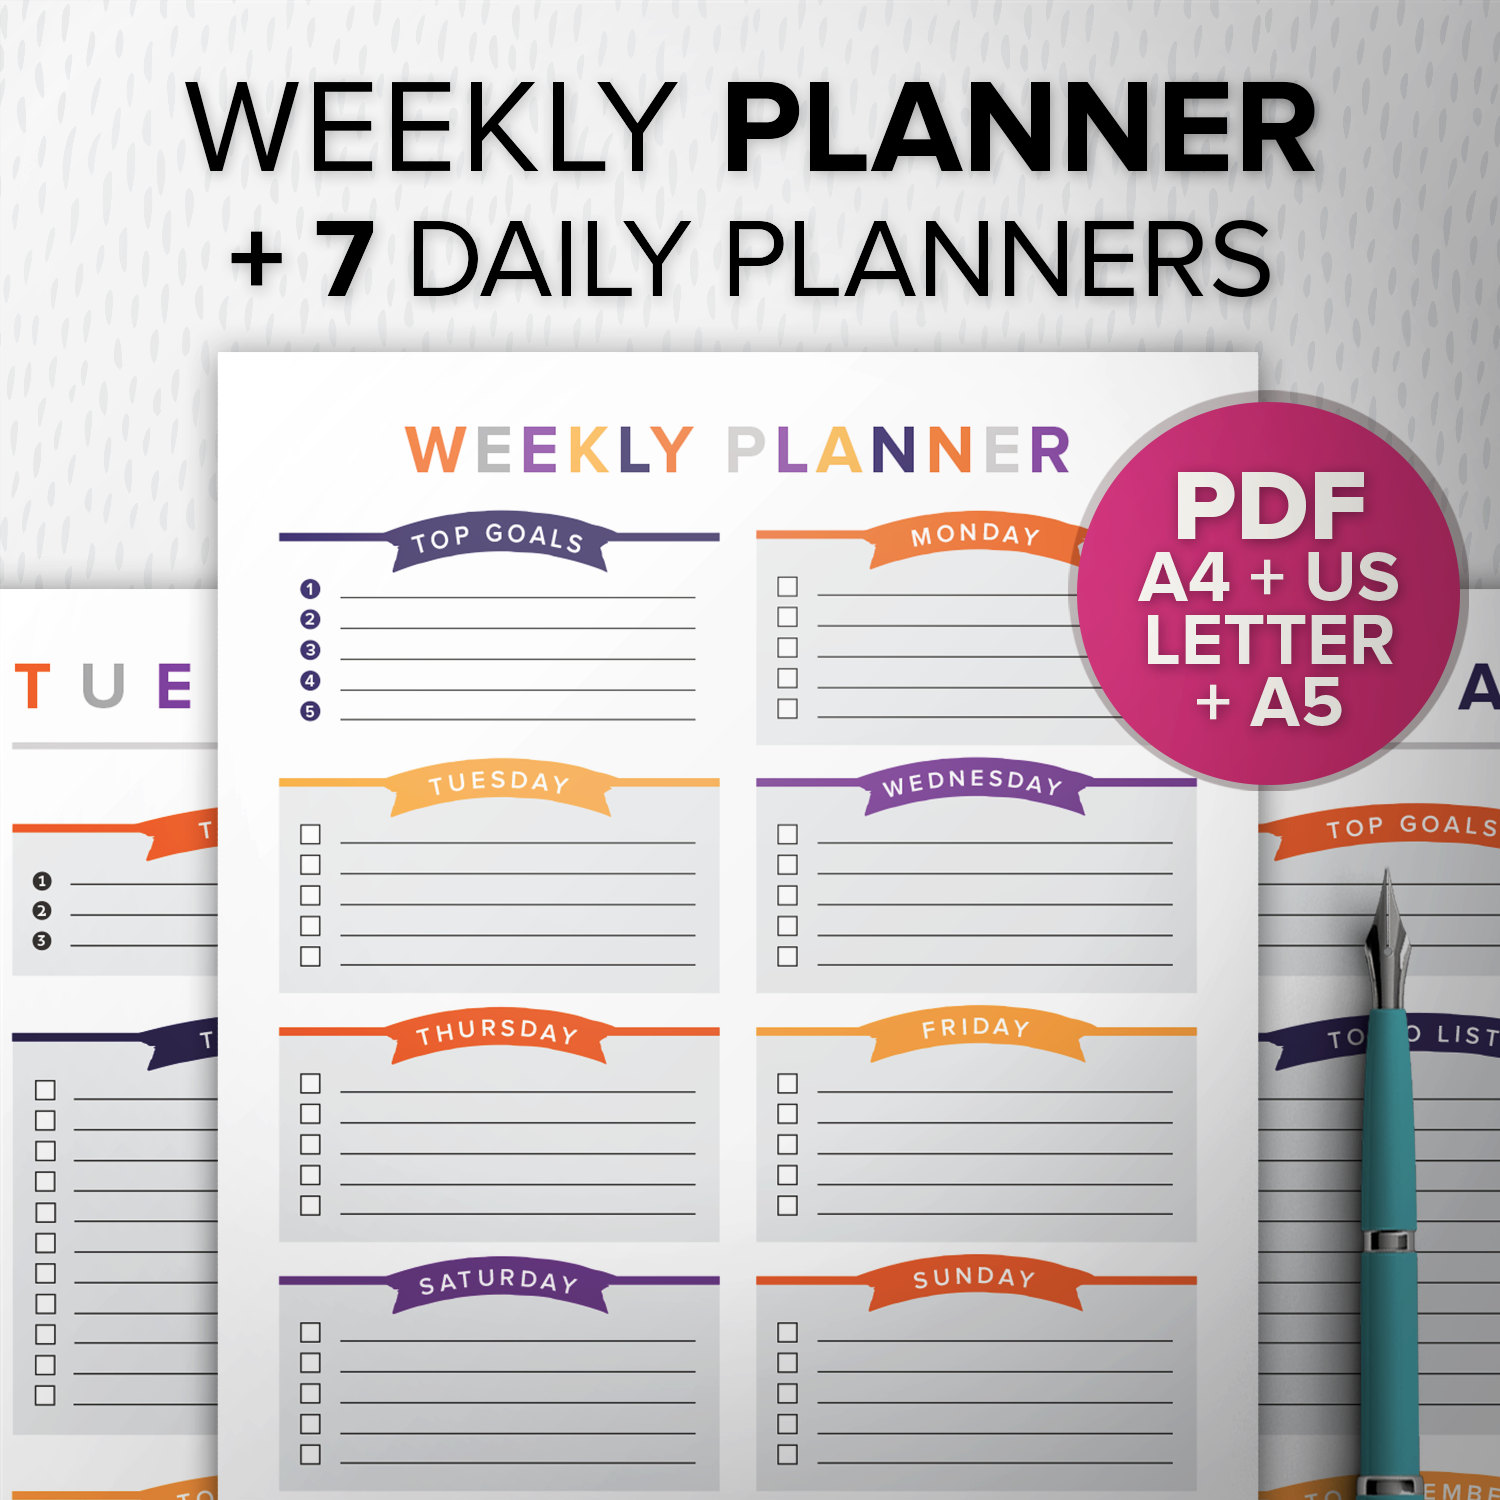 image about Full Focus Planner Pdf known as Colourful Weekly Planner PDF Orange Red, Printable weekly planner, Do-it-yourself todo checklist, A5 Refills, A4/Letter, Table Supervisor, Fast Obtain